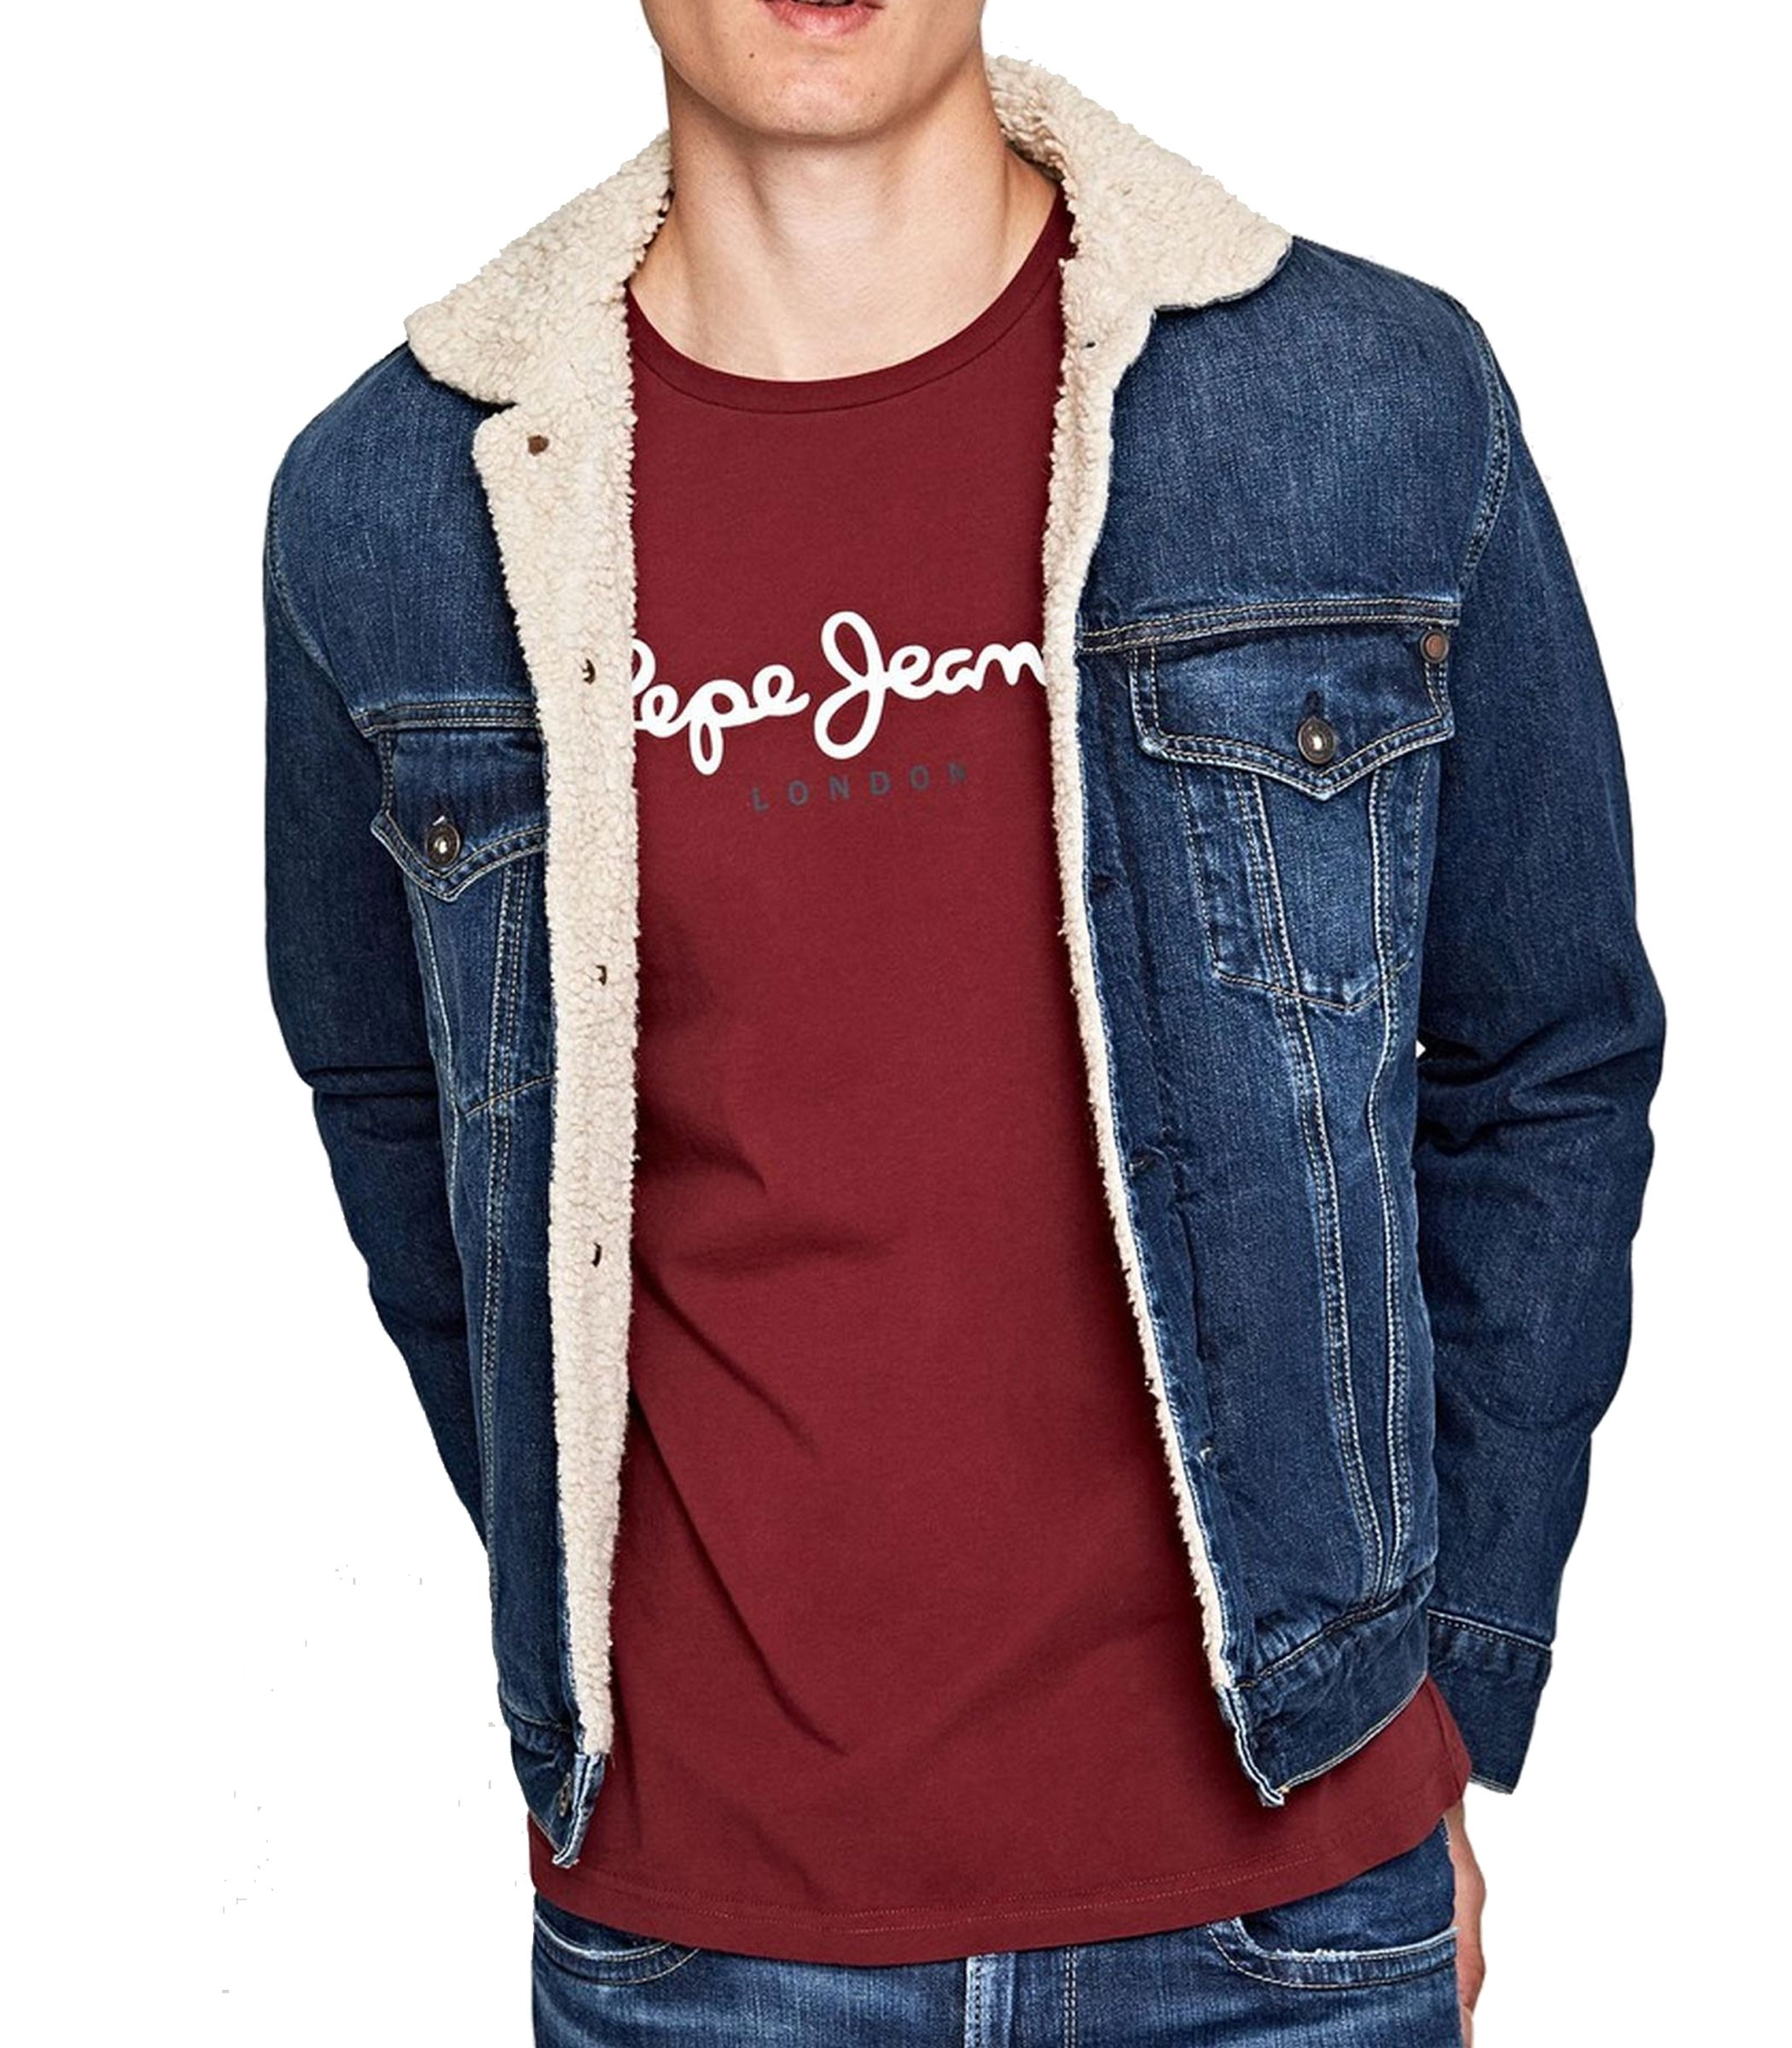 on sale 5d07d 3d151 Giubbotto Giacca Pepe Jeans imbottito in tessuto denim ...